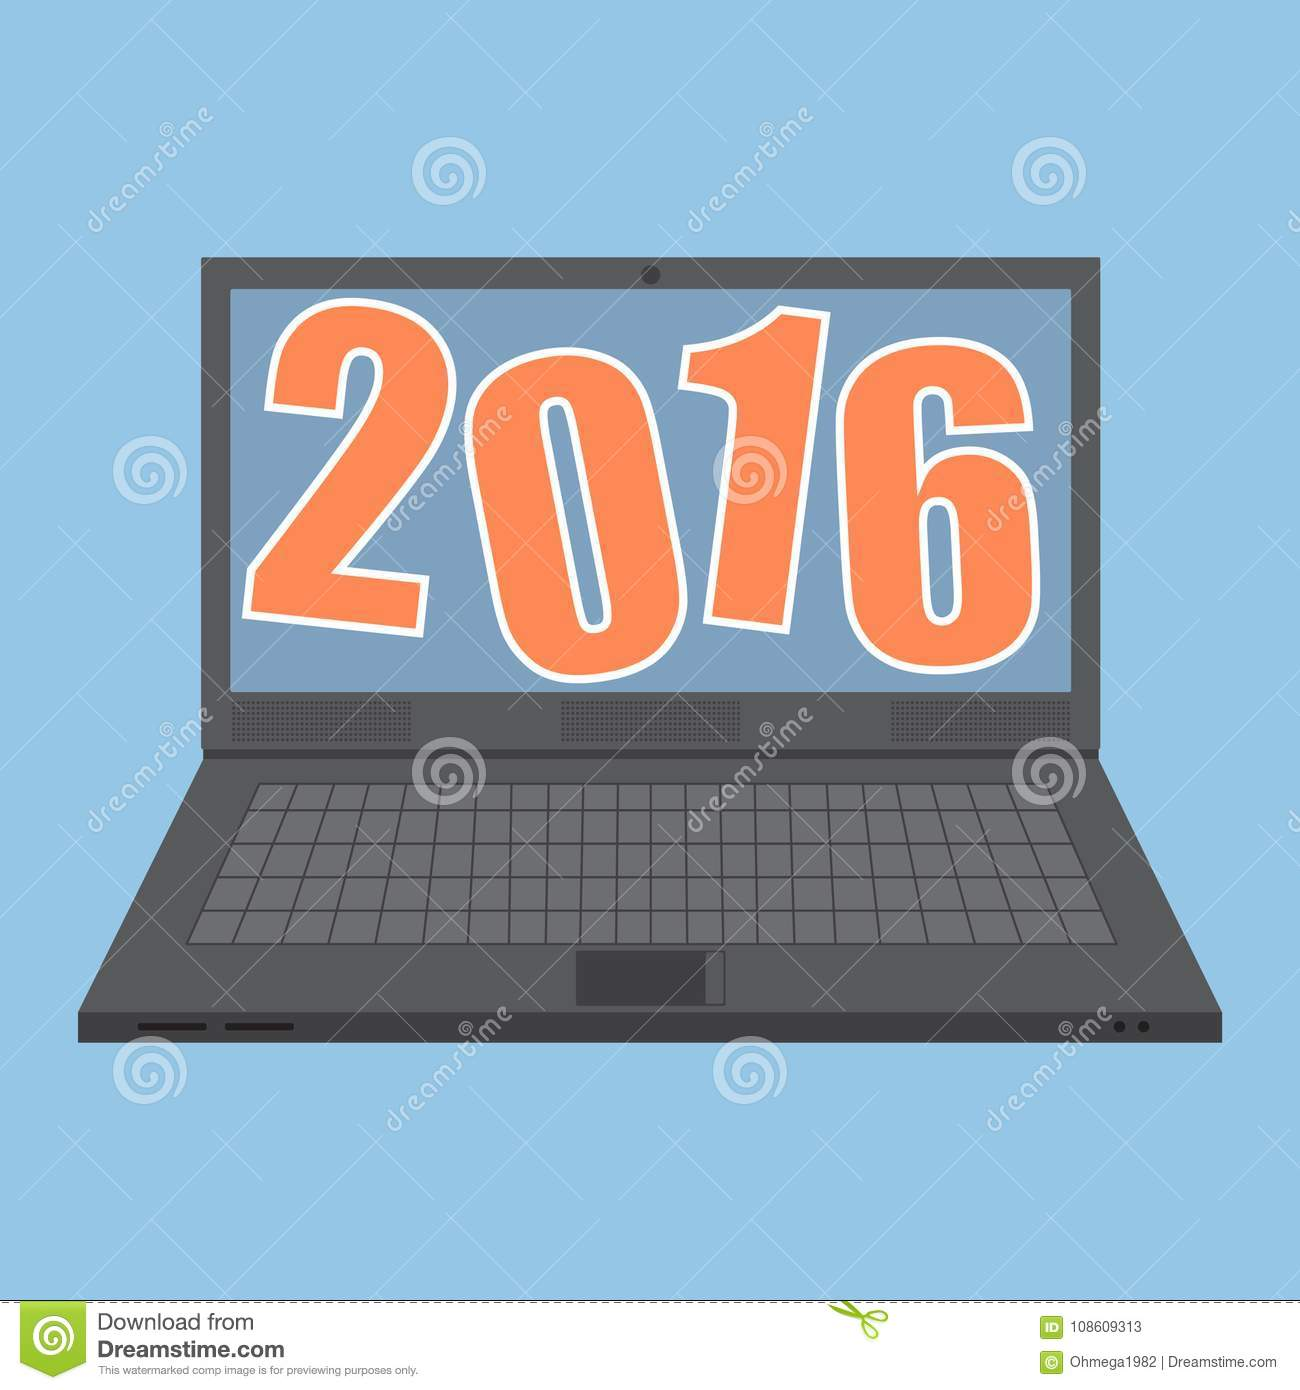 Concept of Laptop Computer with new year 2016 idea concept.